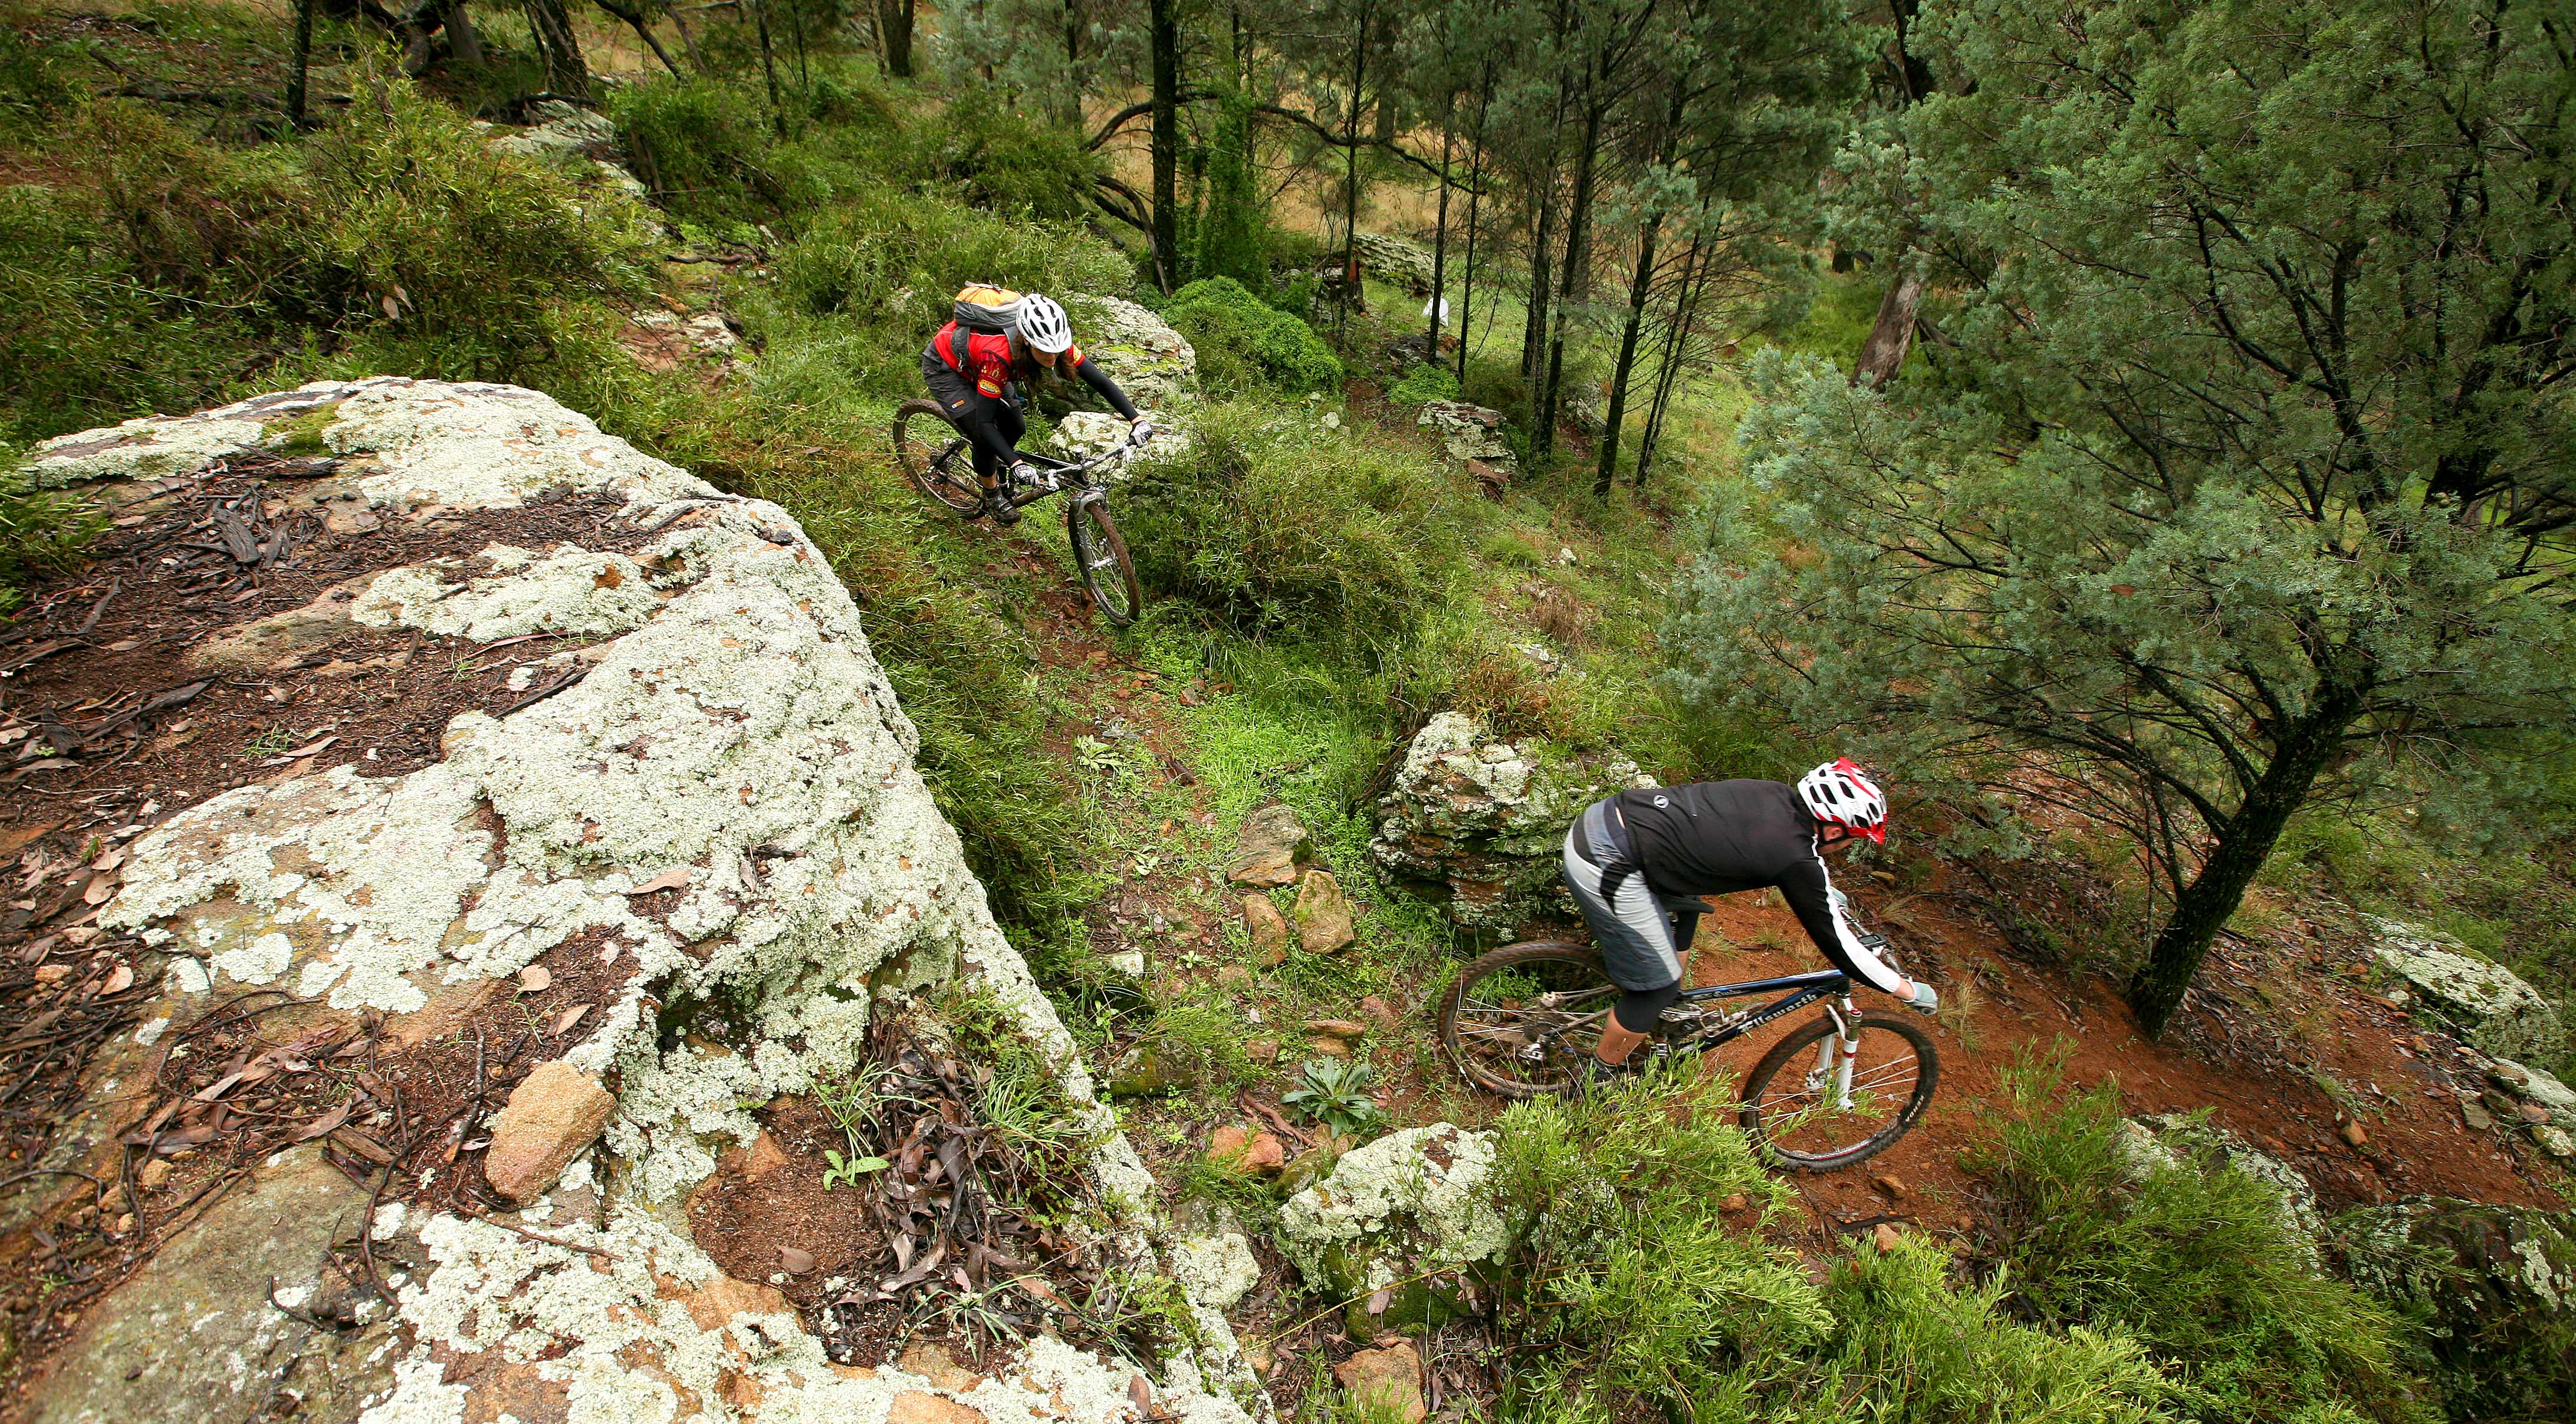 Dubbo - Discovering New Trails out West